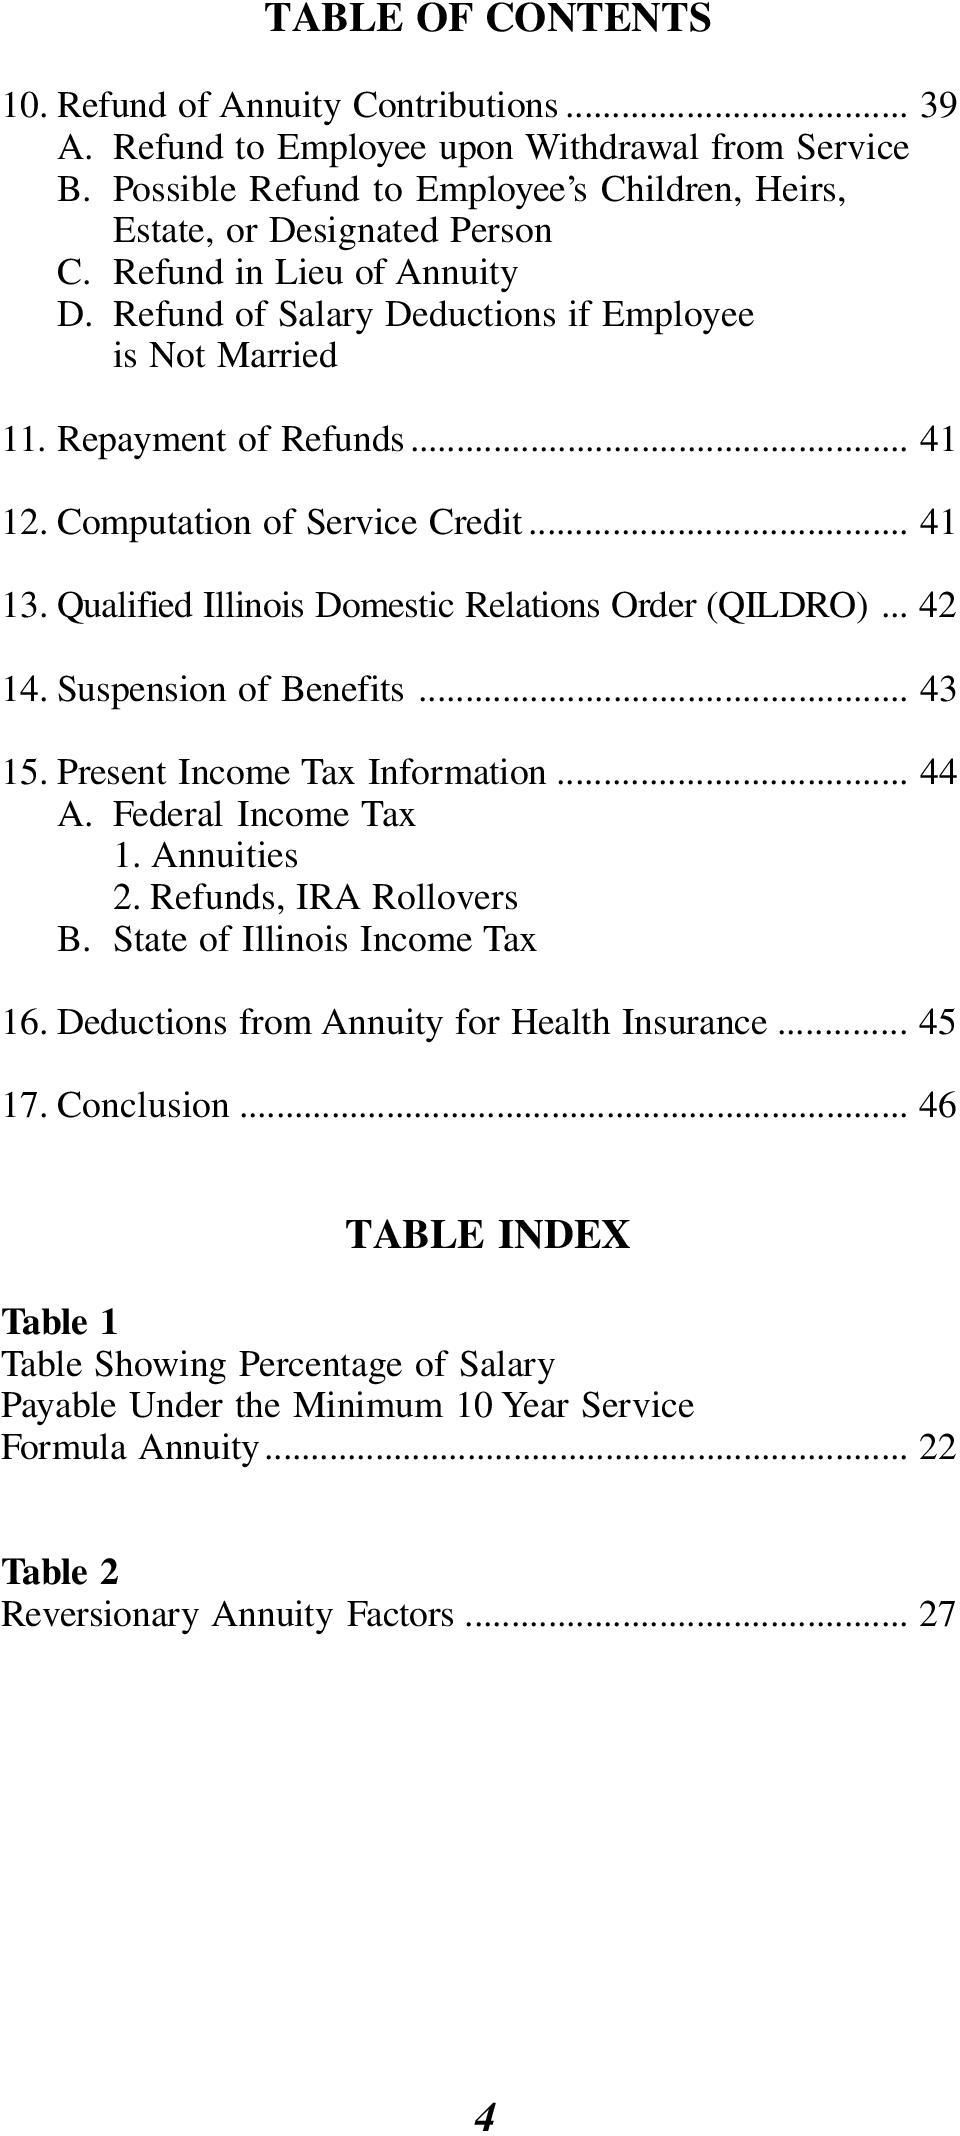 Qualified Illinois Domestic Relations Order (QILDRO)... 42 14. Suspension of Benefits... 43 15. Present Income Tax Information... 44 A. Federal Income Tax 1. Annuities 2. Refunds, IRA Rollovers B.